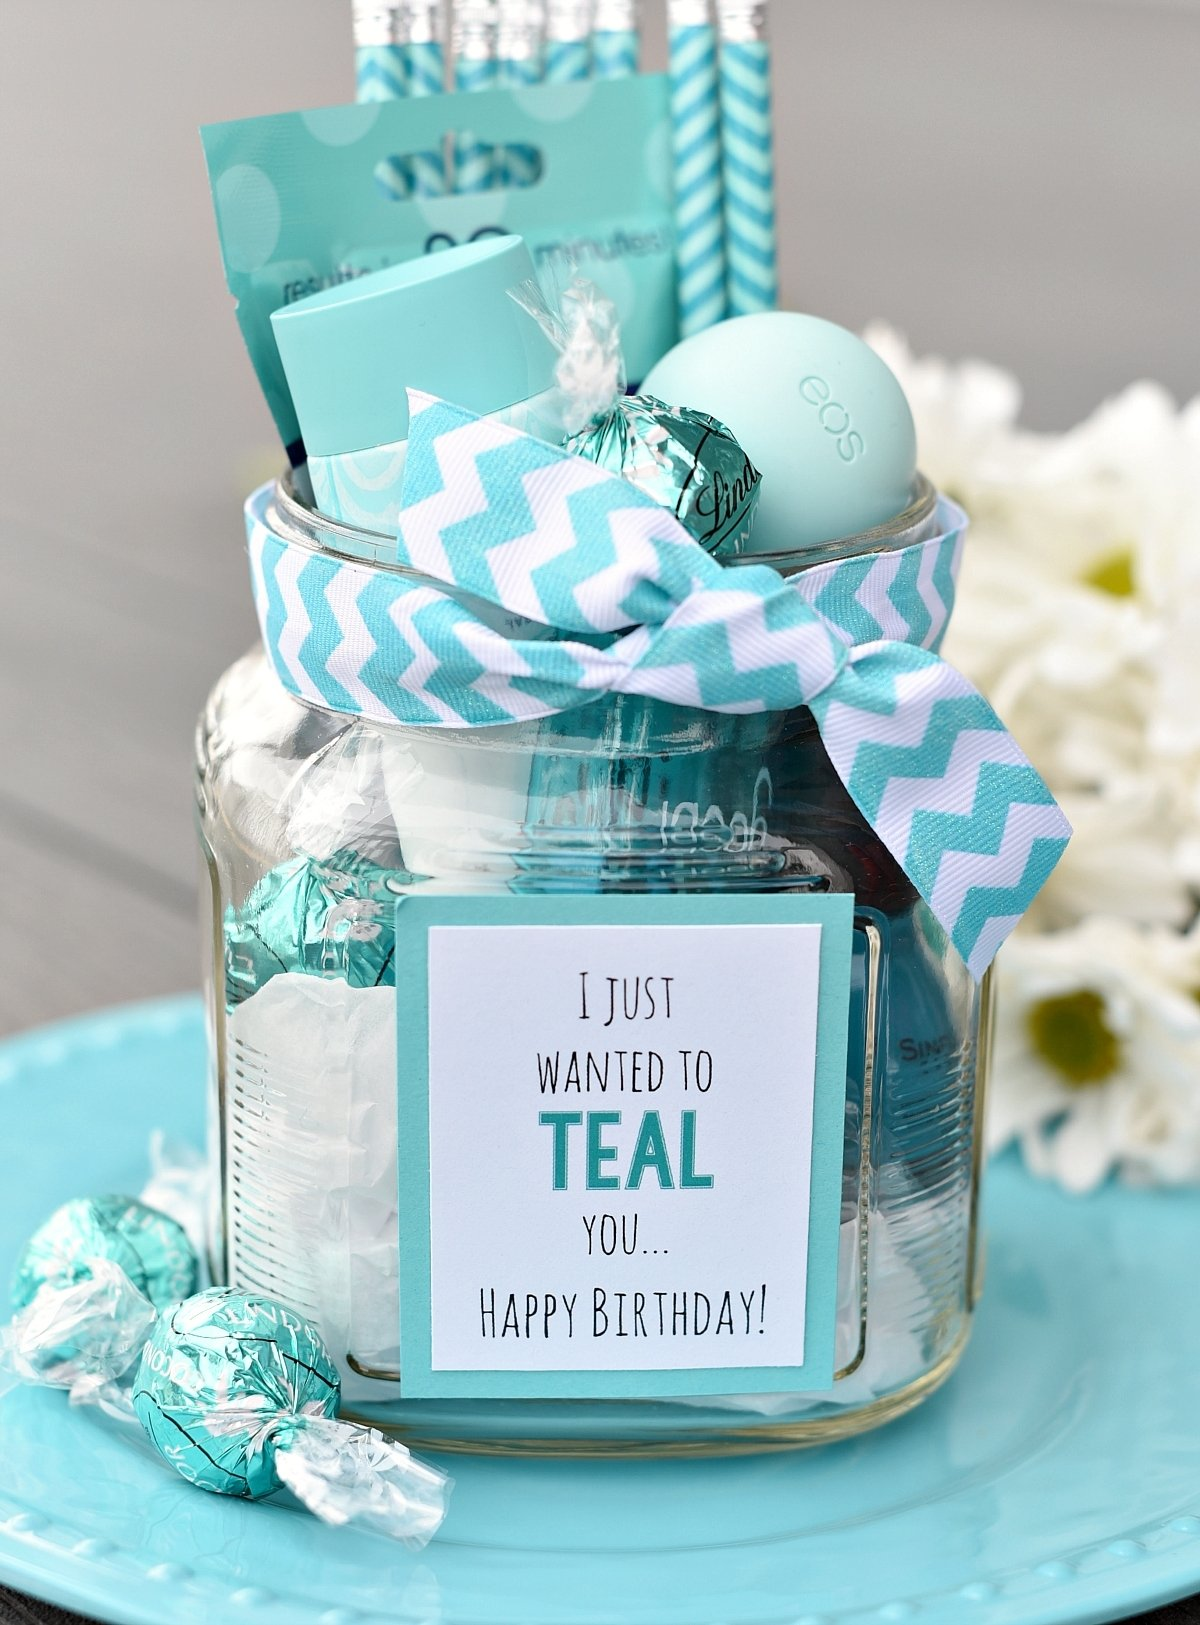 10 Lovely Ideas For A Birthday Gift teal birthday gift idea for friends fun squared 2